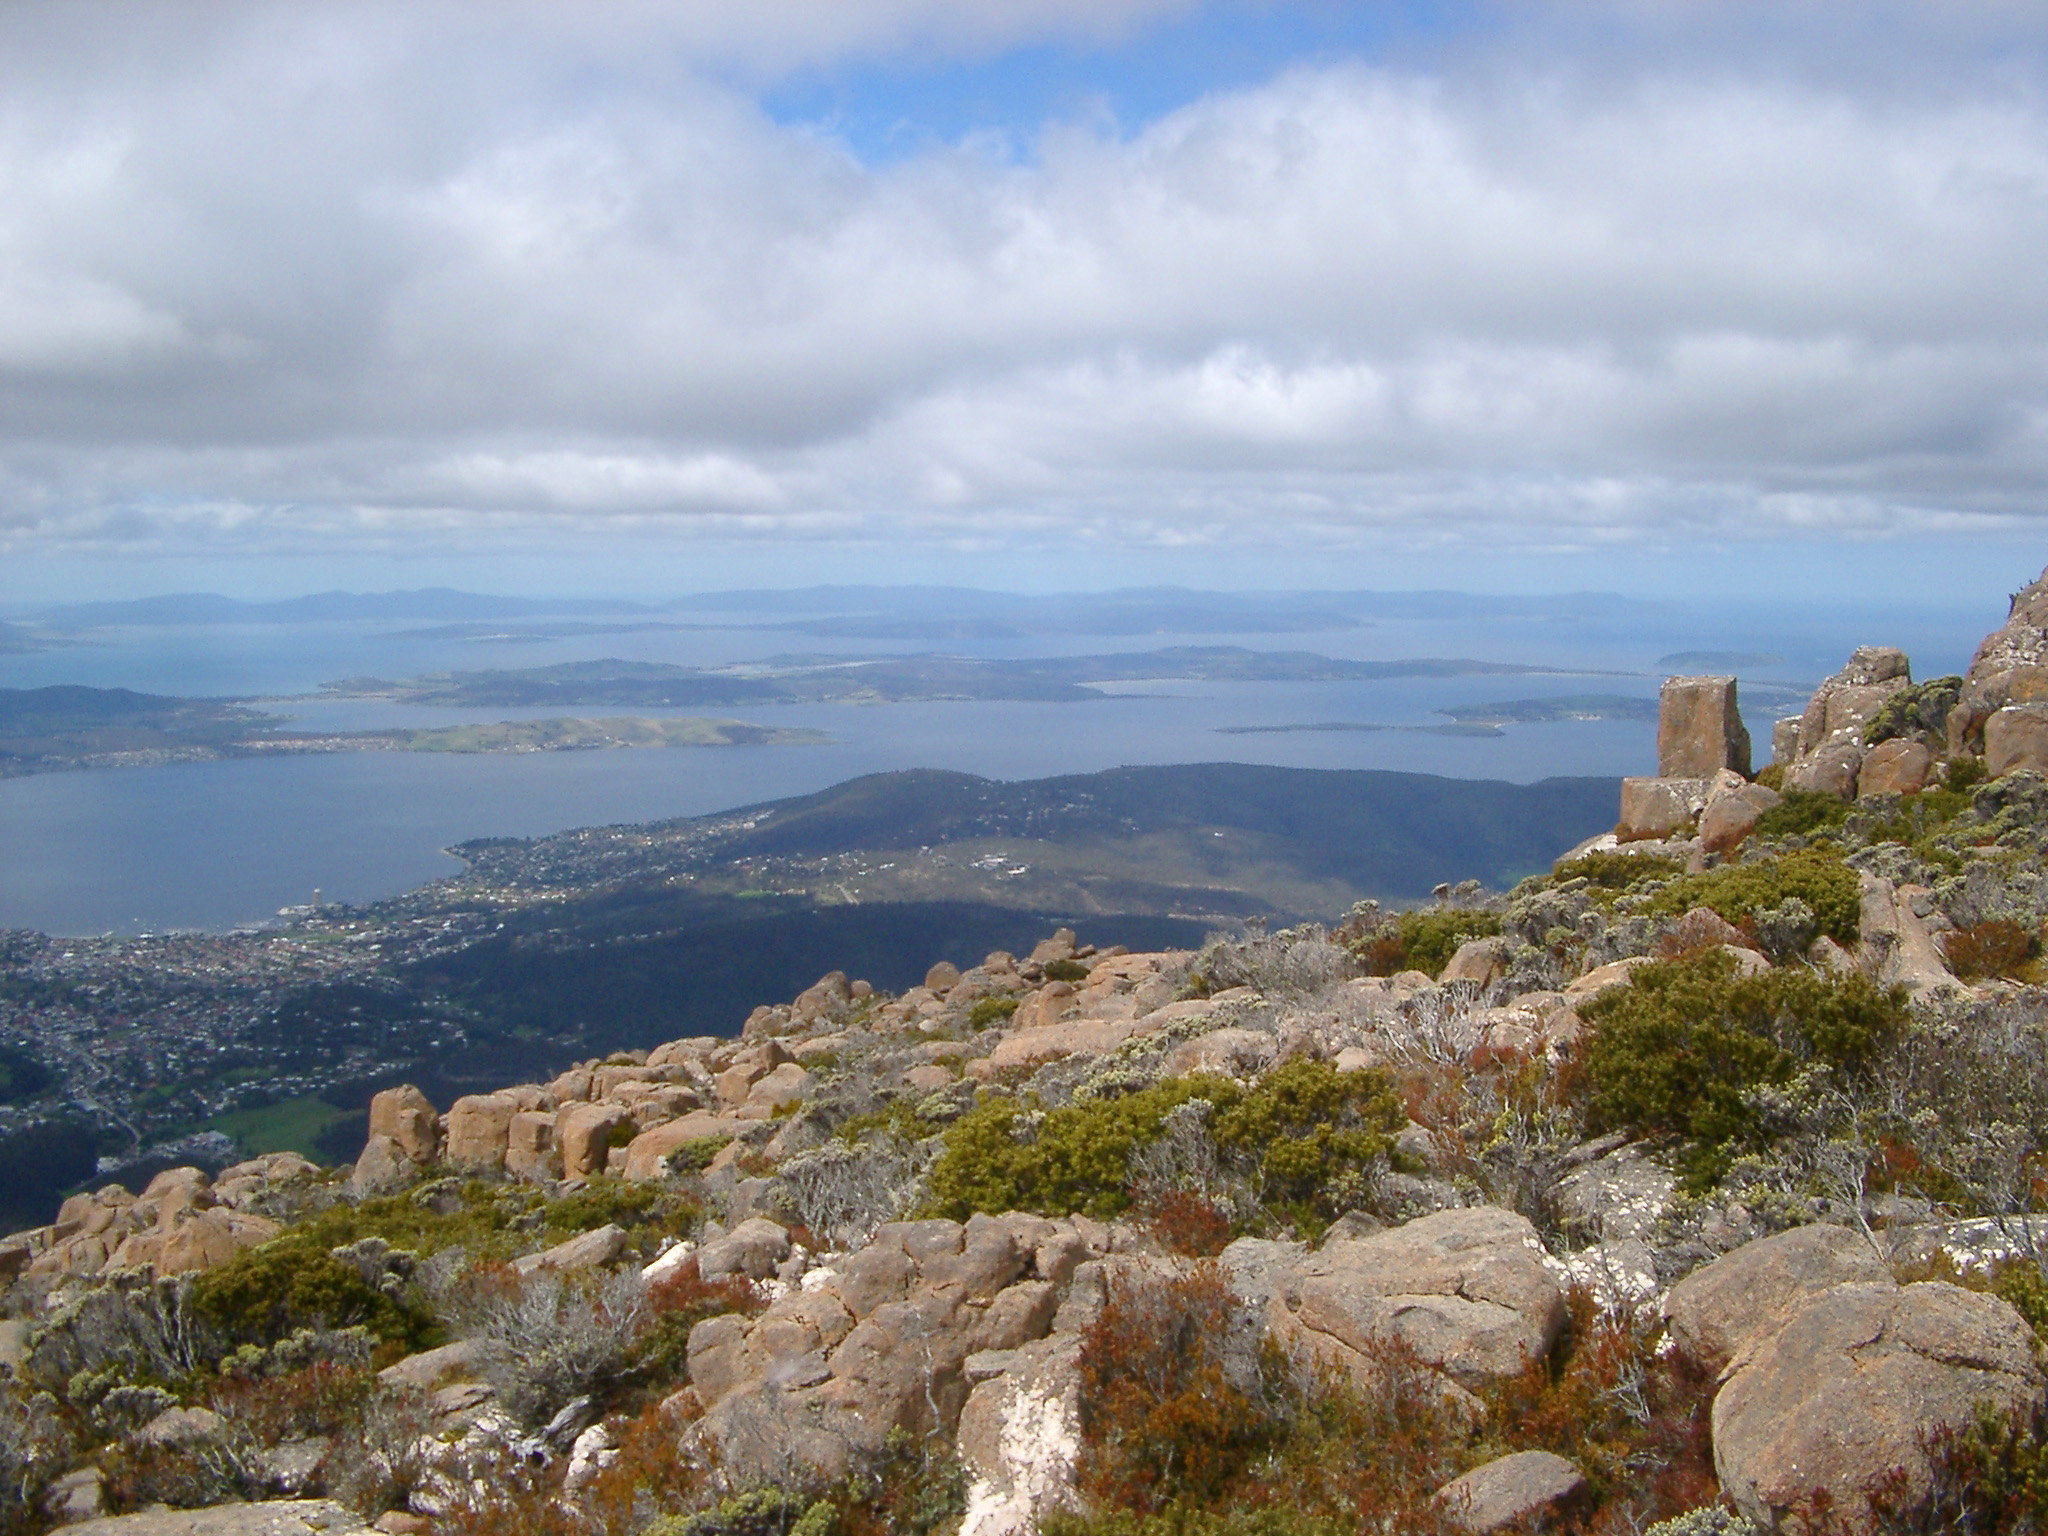 View from the summit of Mount Wellington, Tasmania of the Derwent River estuary and city of Hobart under a cloudy blue sky